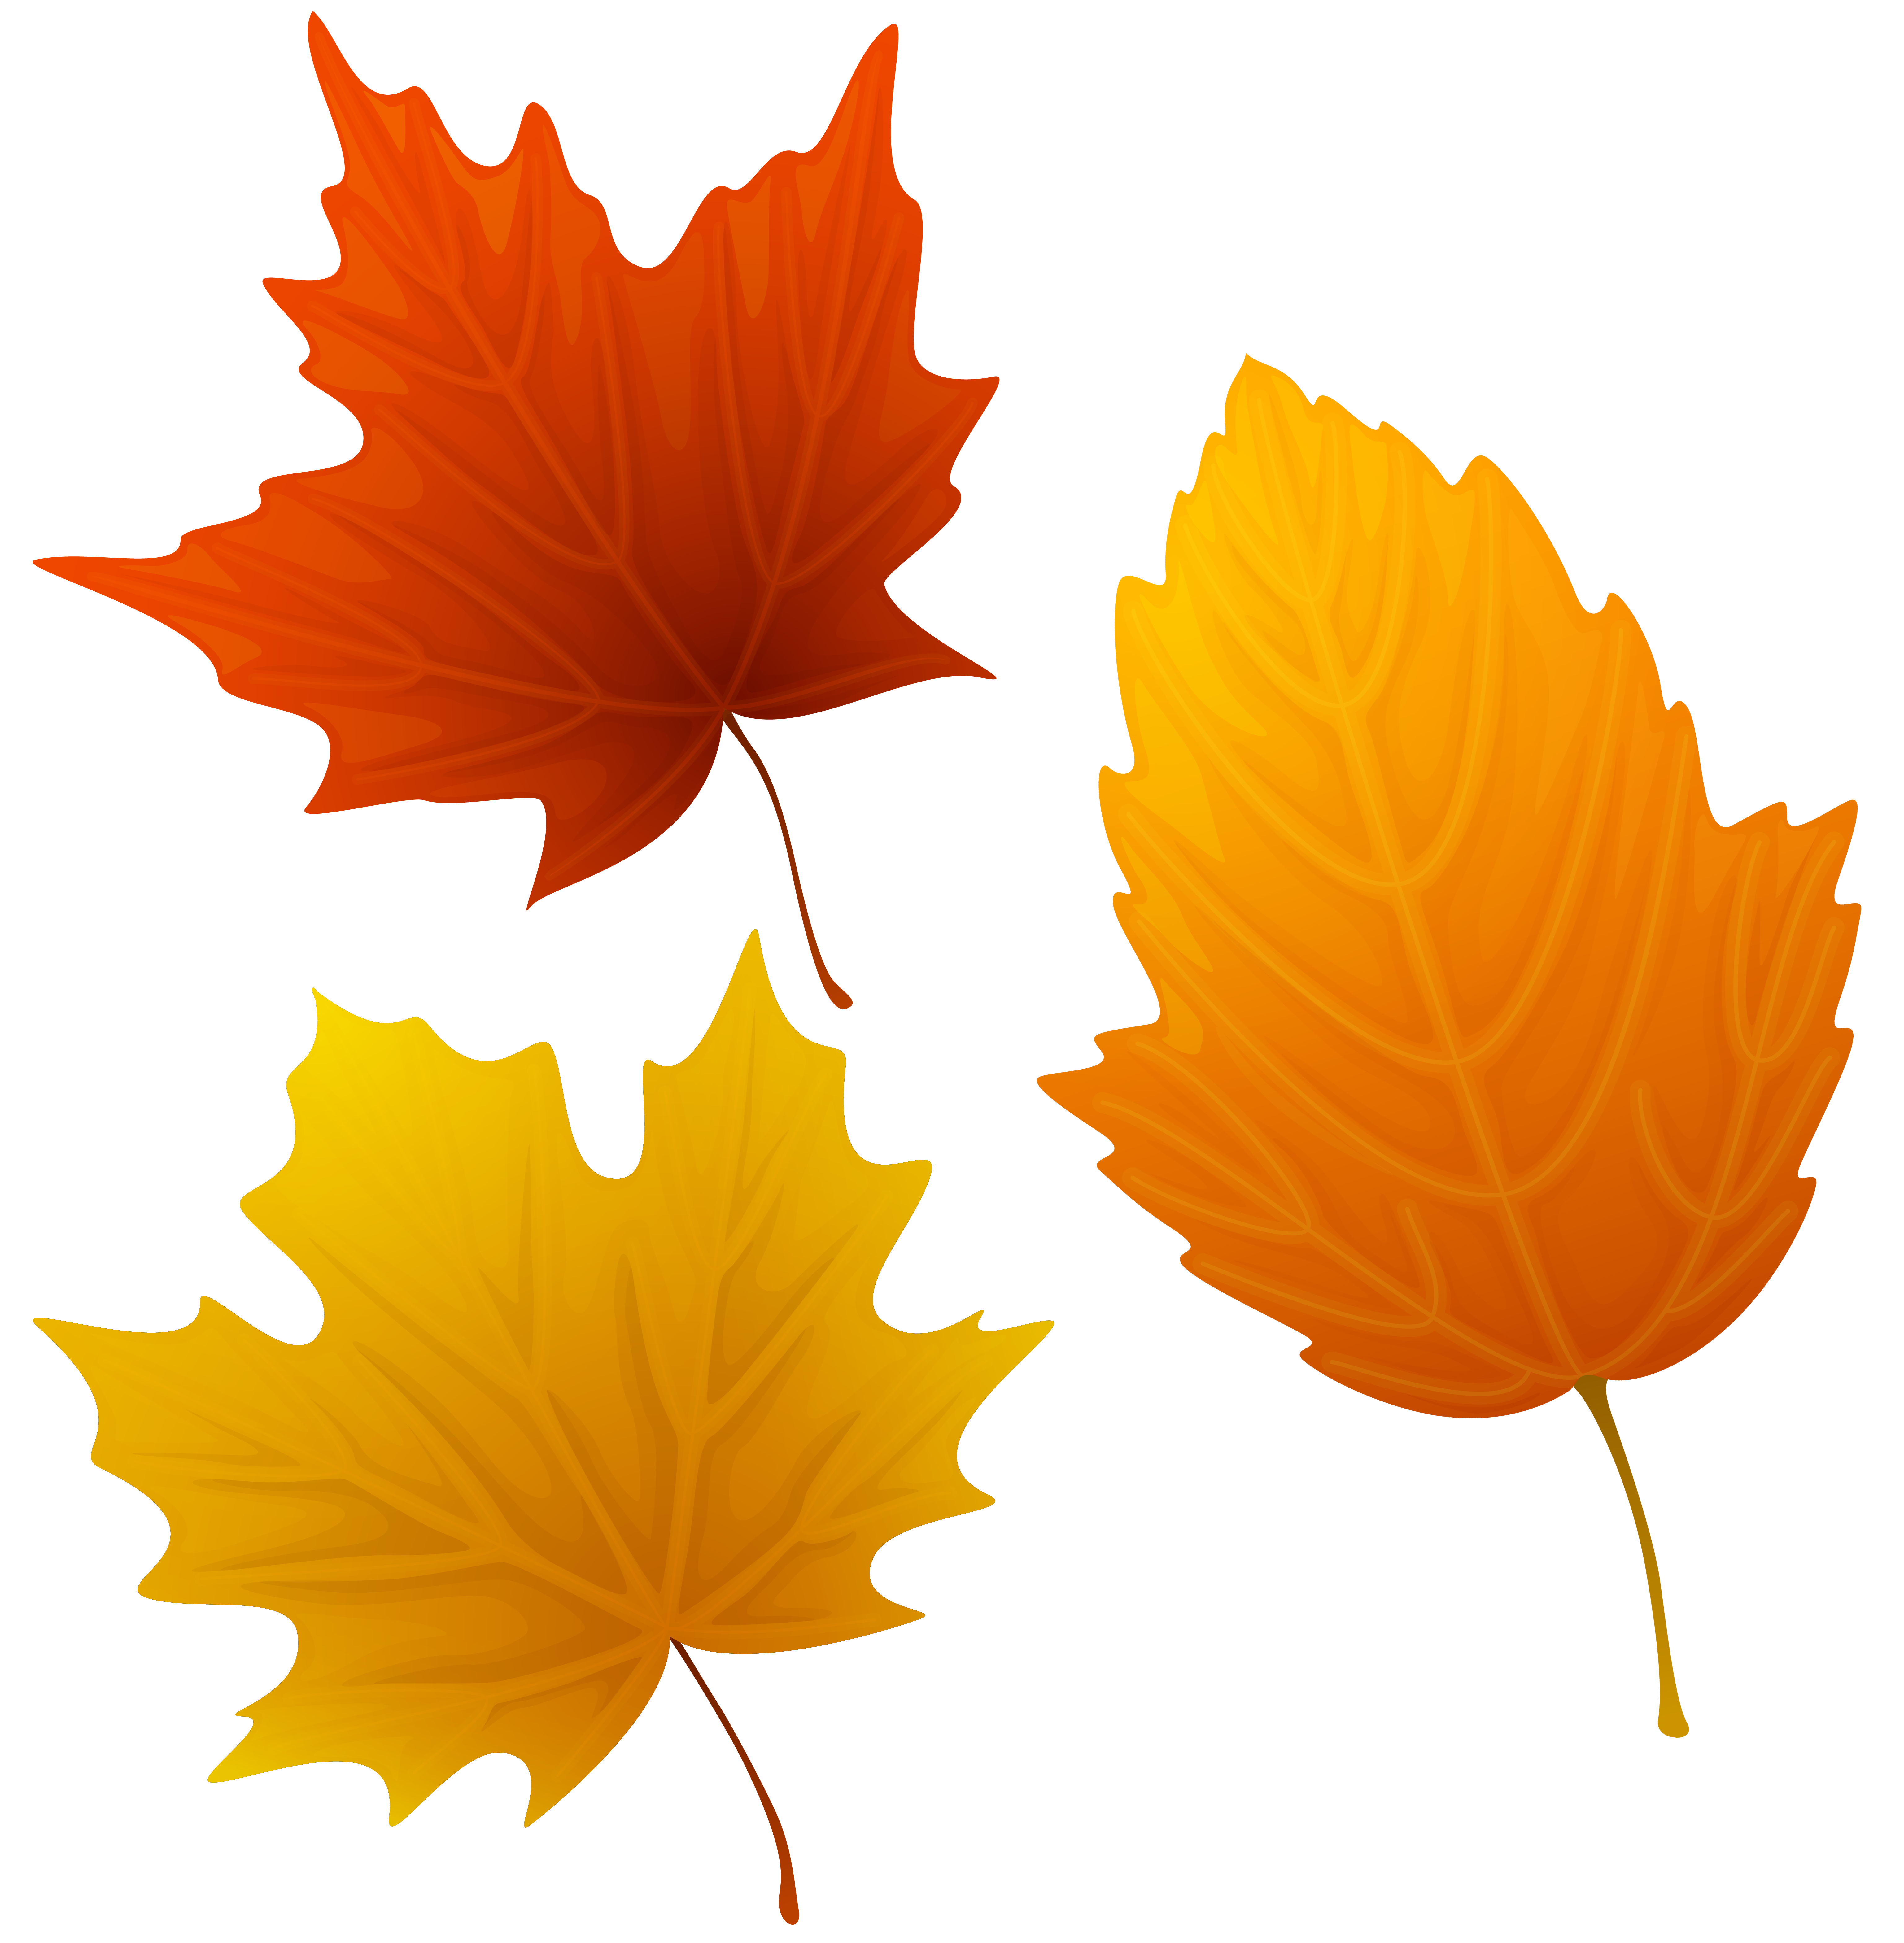 Autumn Leaf Clipart | Free download on ClipArtMag